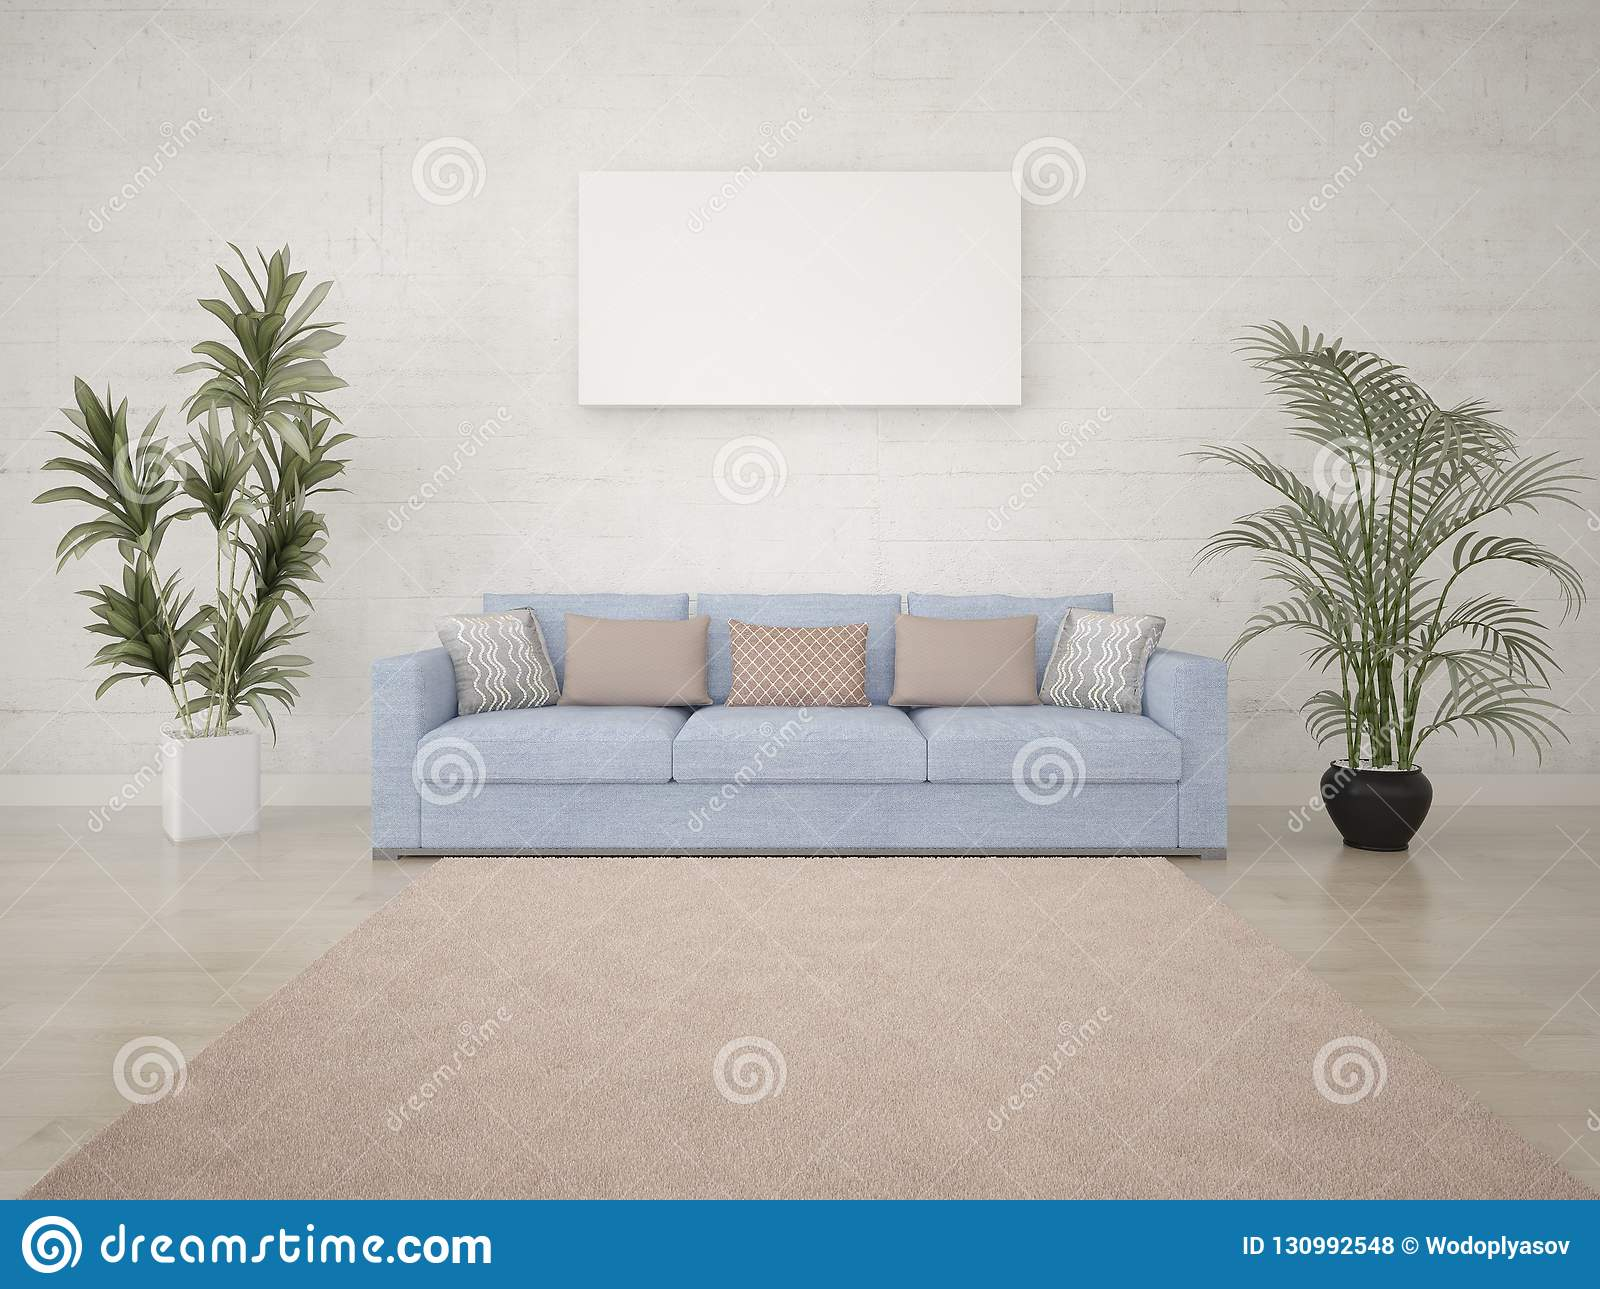 Mock Up Bright Living Room With An Aesthetic Quality Sofa Stock